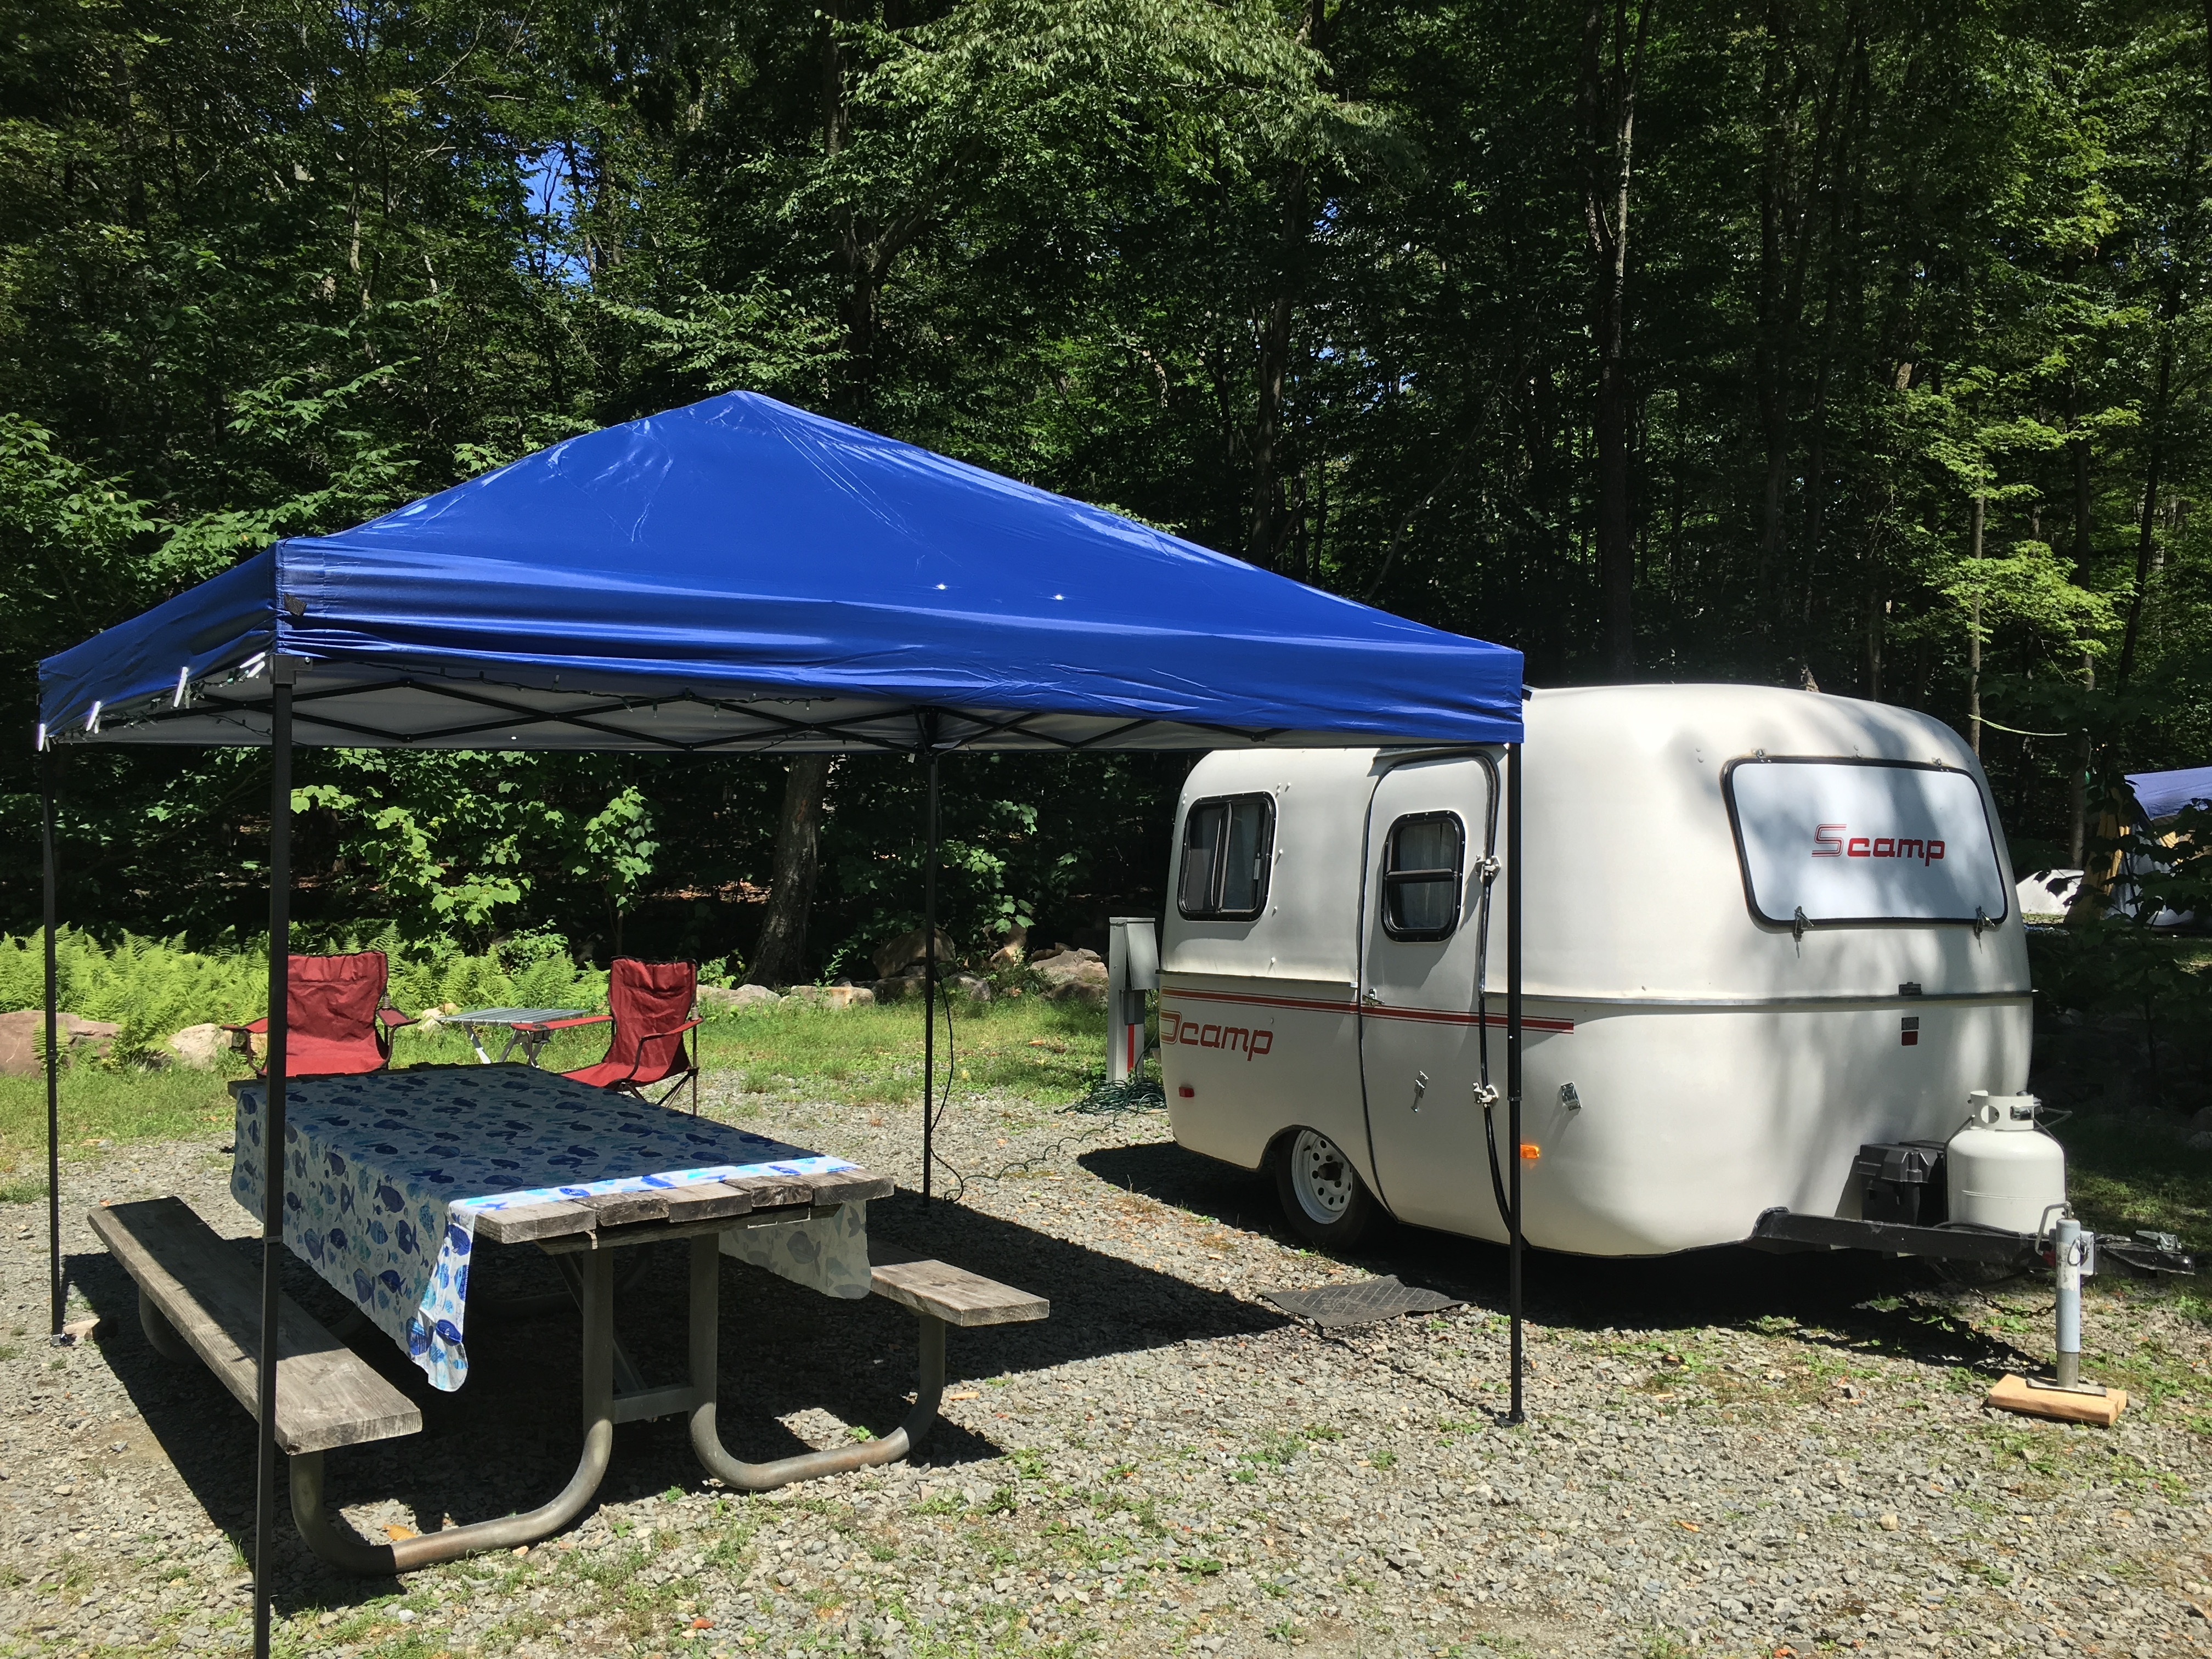 Scamp All American trailer with pop up awning, camp chairs and table cloth - all included in rental (picnic table not included). Scamp 13' 1985